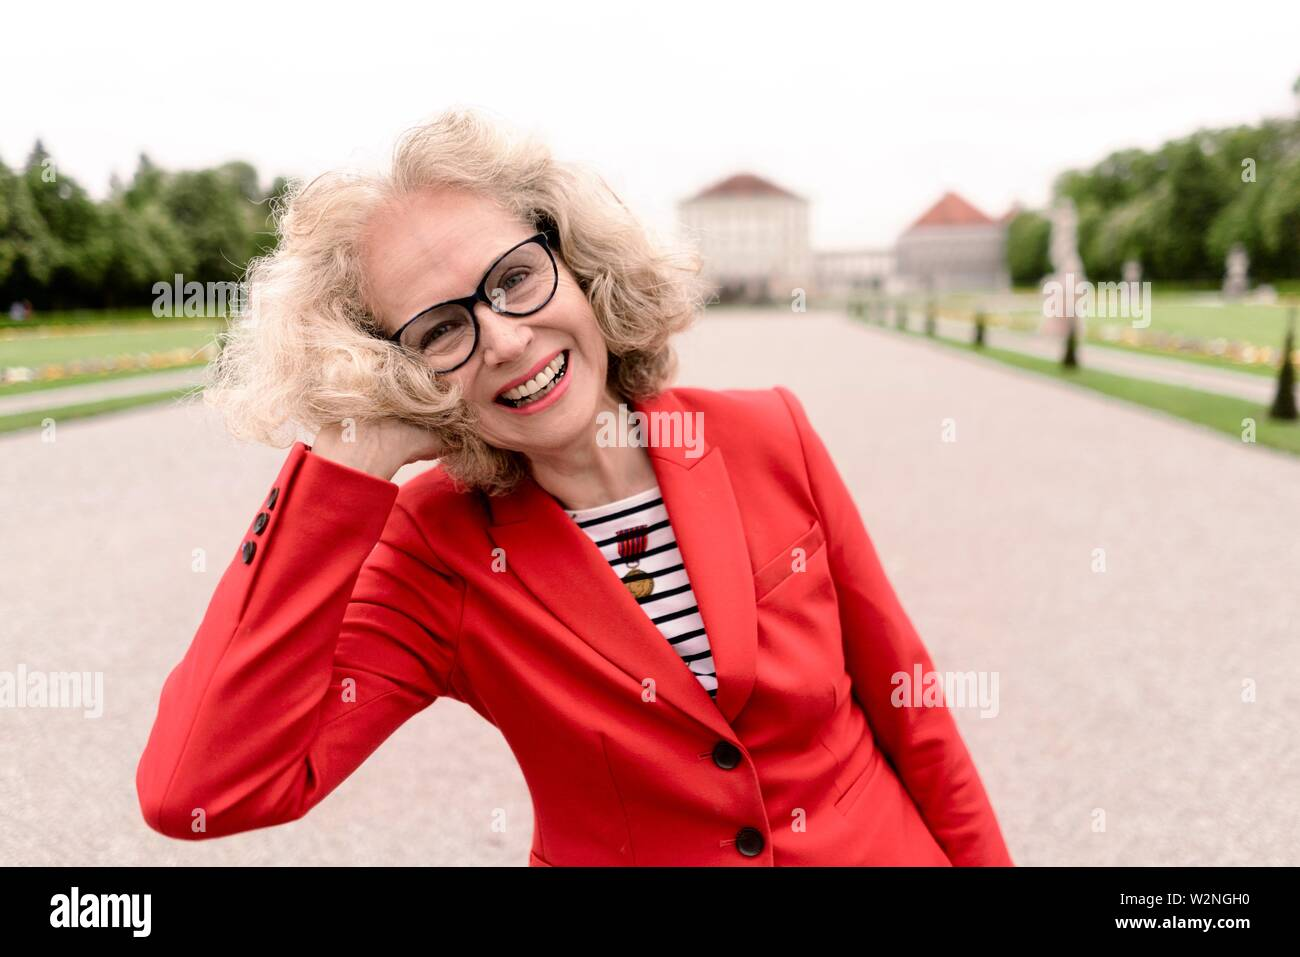 happy senior woman (67 years old) in park at touristic sight Nymphenburg palace, in Munich, Germany. - Stock Image